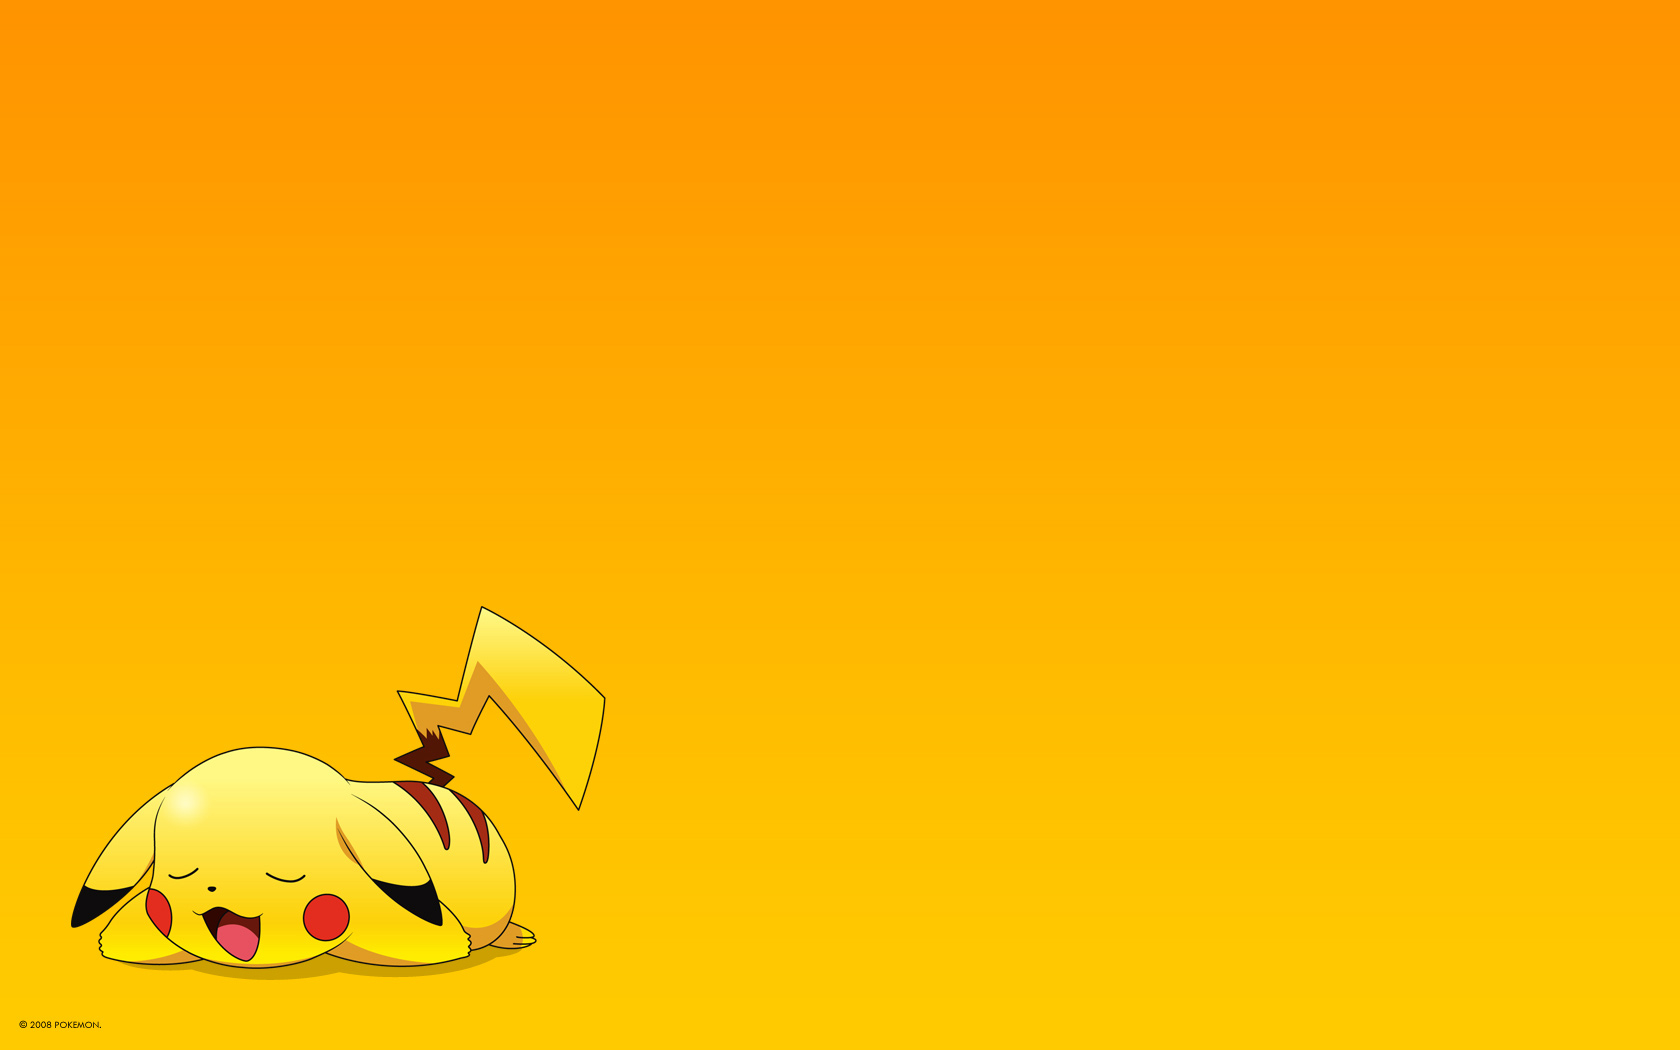 Pikachu Wallpaper   Pikachu Wallpaper 24422765 1680x1050